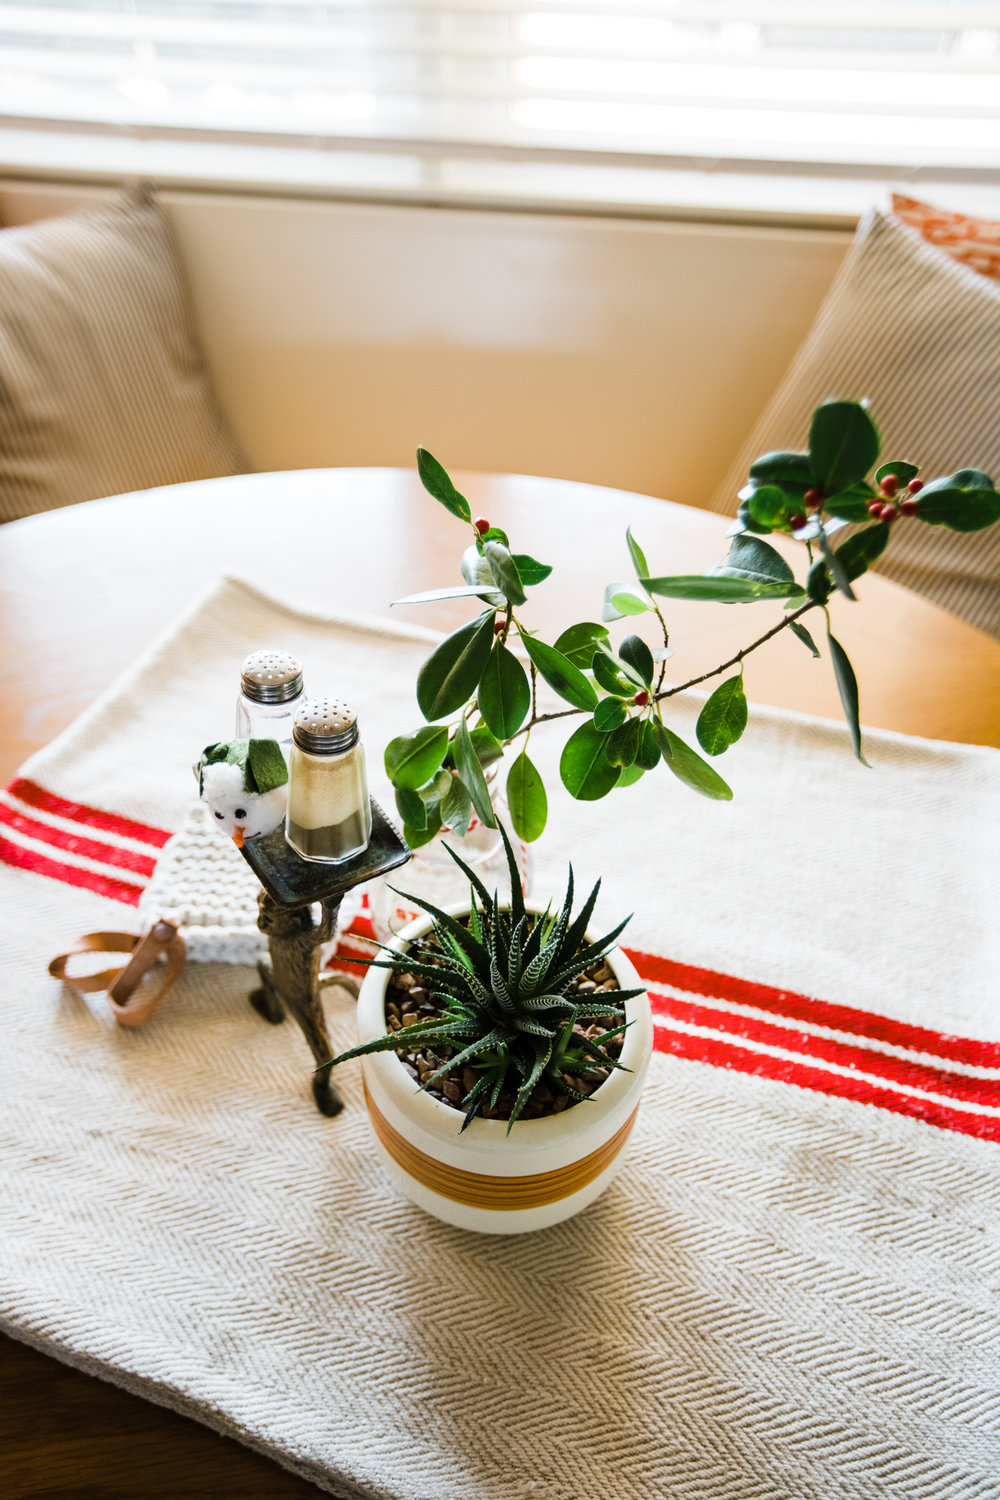 My trusty red striped grain sack (from the first year we owned Retro Den) graced the    eat-in table    this year. And a branch from our weird holly tree-bush plus a succulent and a snowman head makes for a festive eating experience.